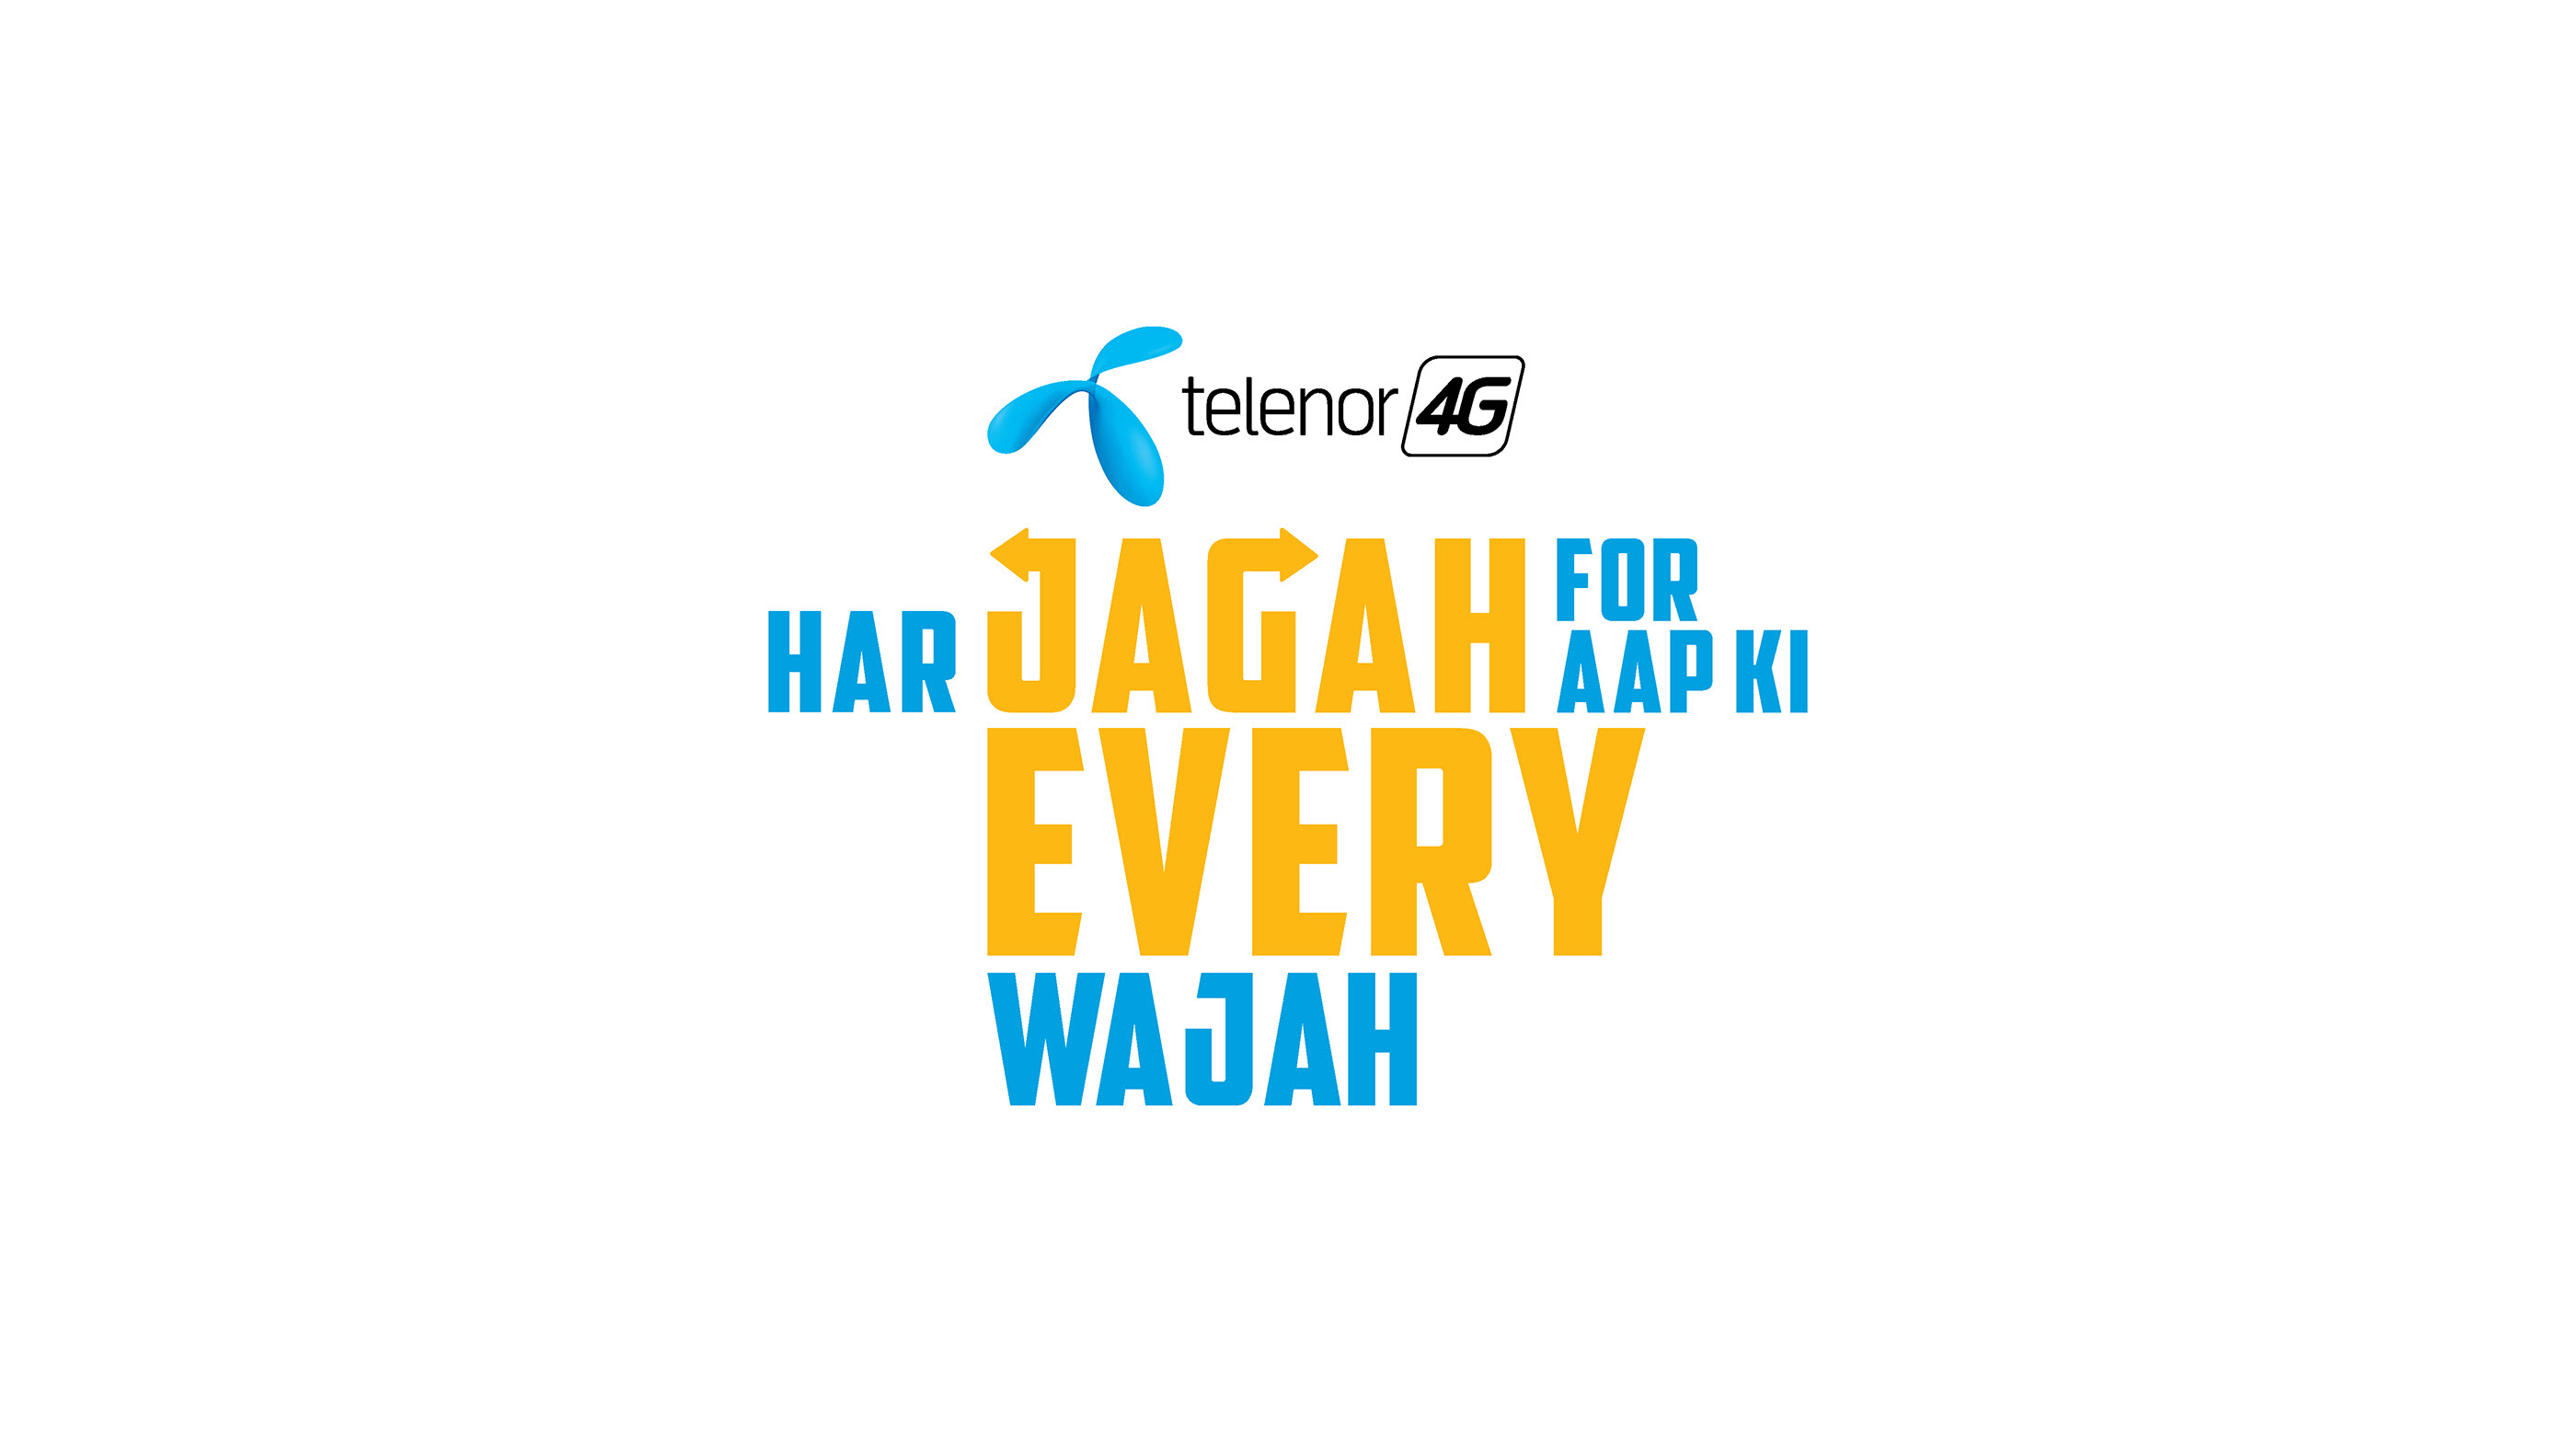 Telenor Pitch on Behance